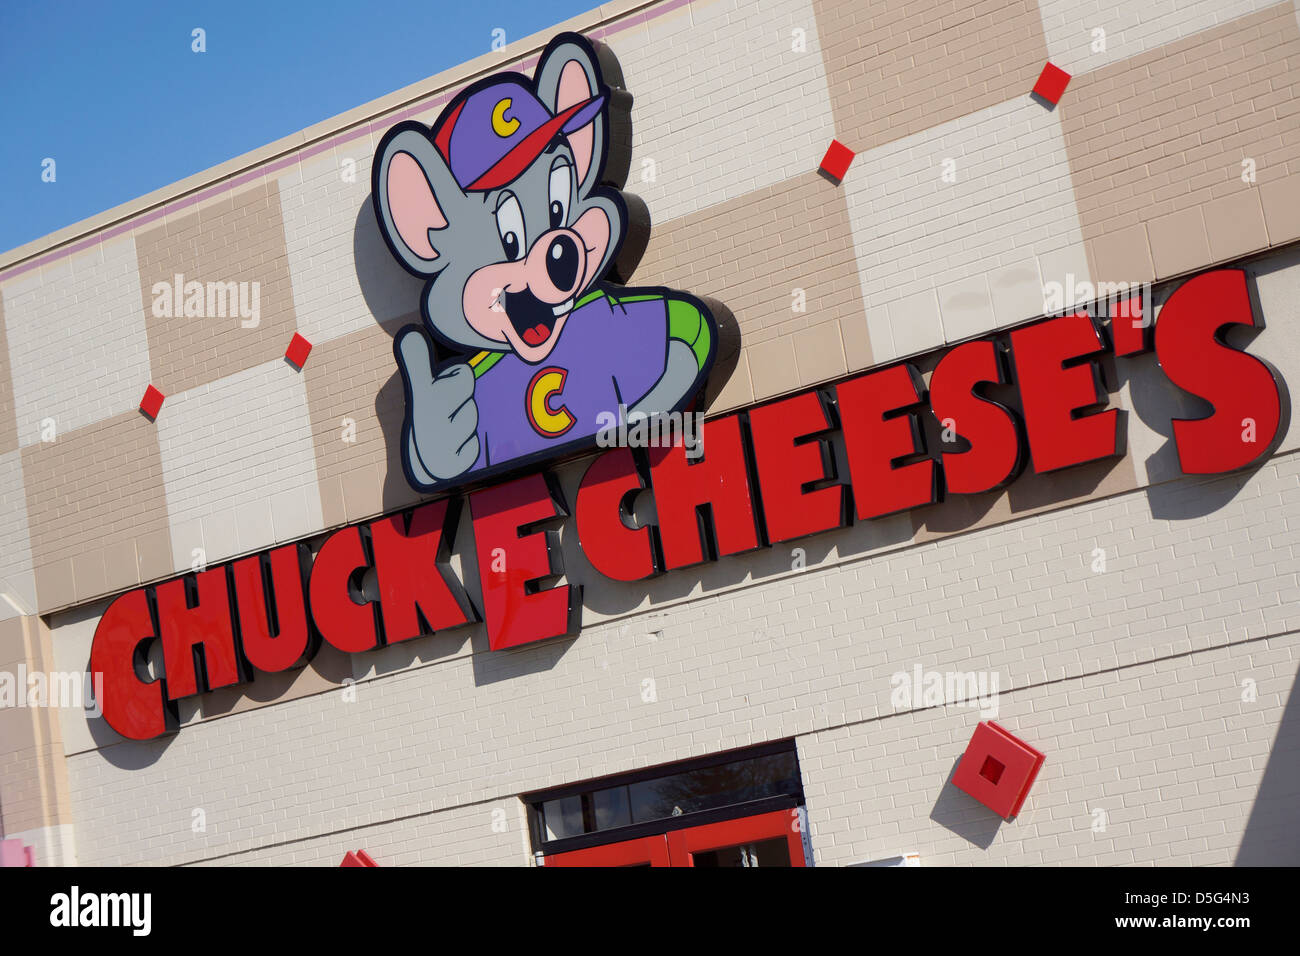 Chuck E Cheese's Restaurant Sign - Stock Image